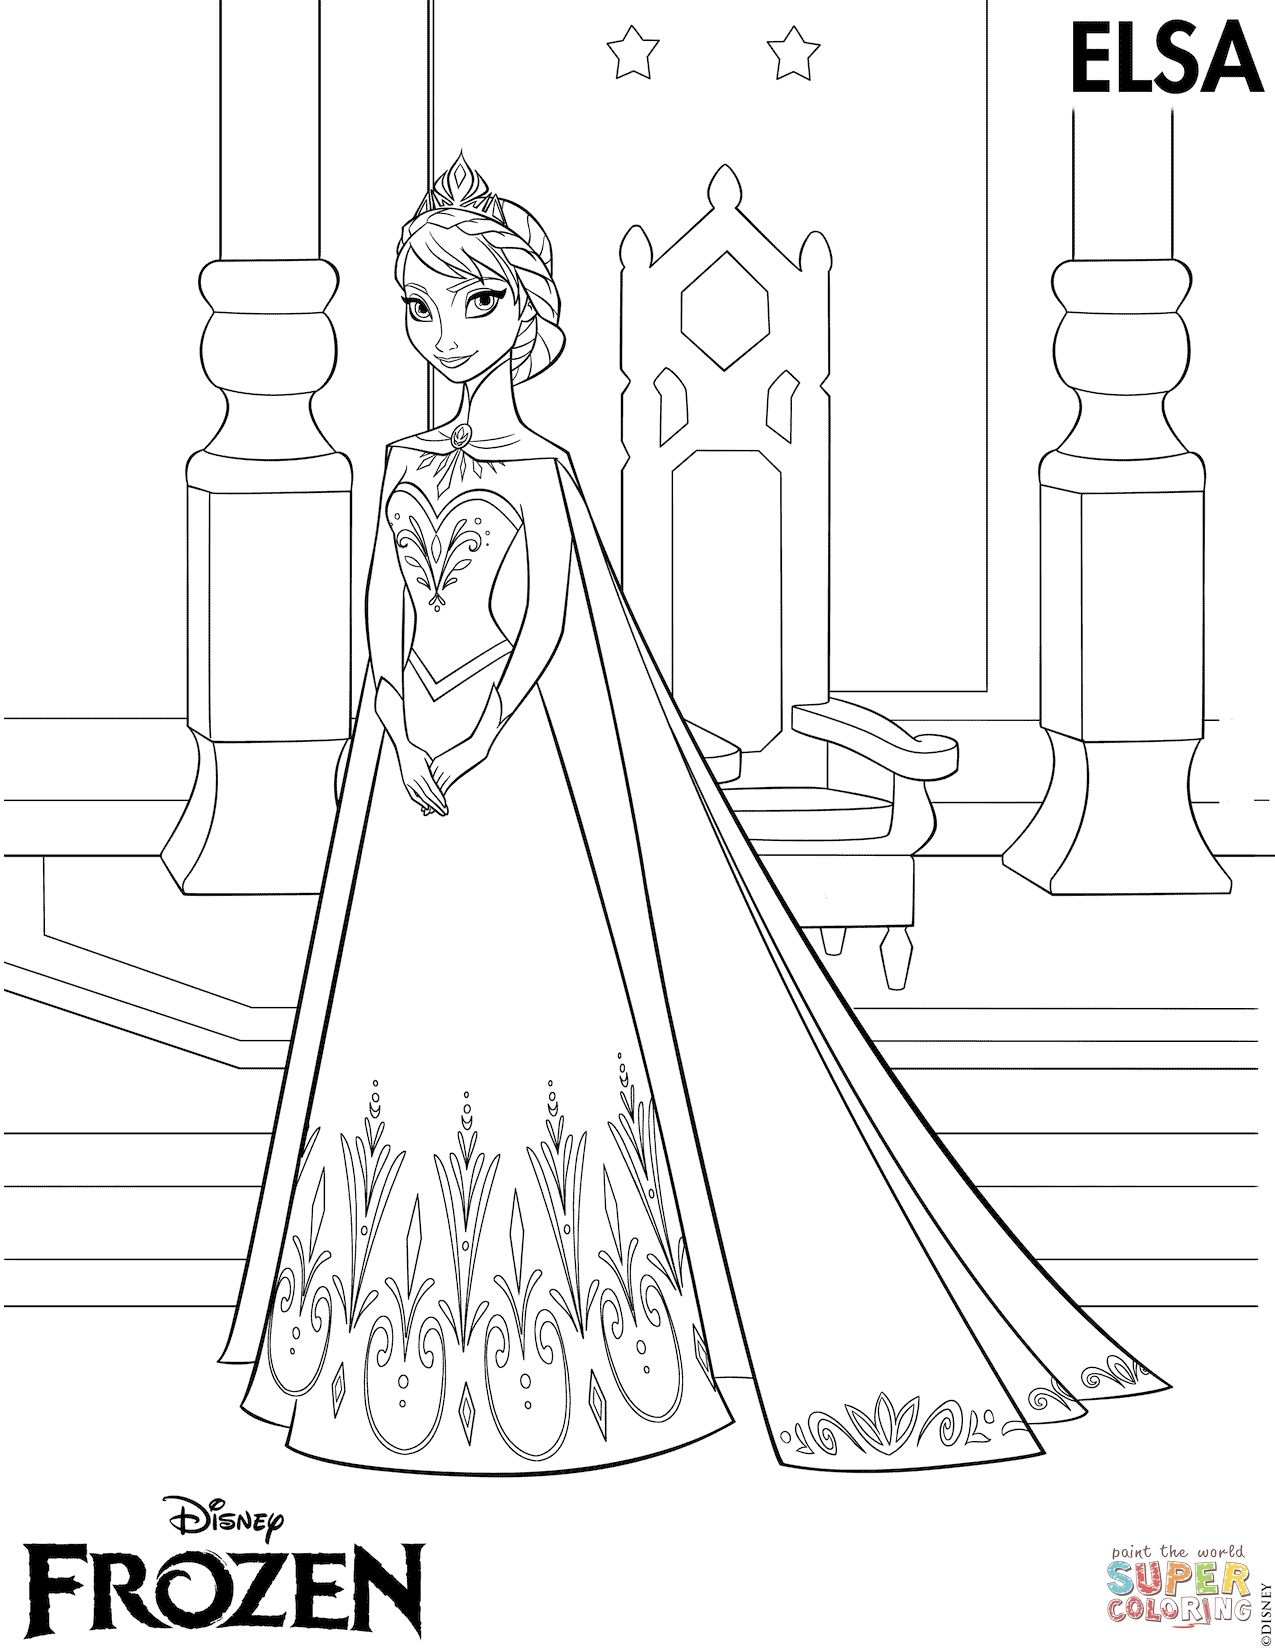 Elsa Coloring Pages Free Pdf Coloring Pages Allow Kids To Accompany Their Favorite Characters On An Elsa Coloring Pages Elsa Coloring Frozen Coloring Pages